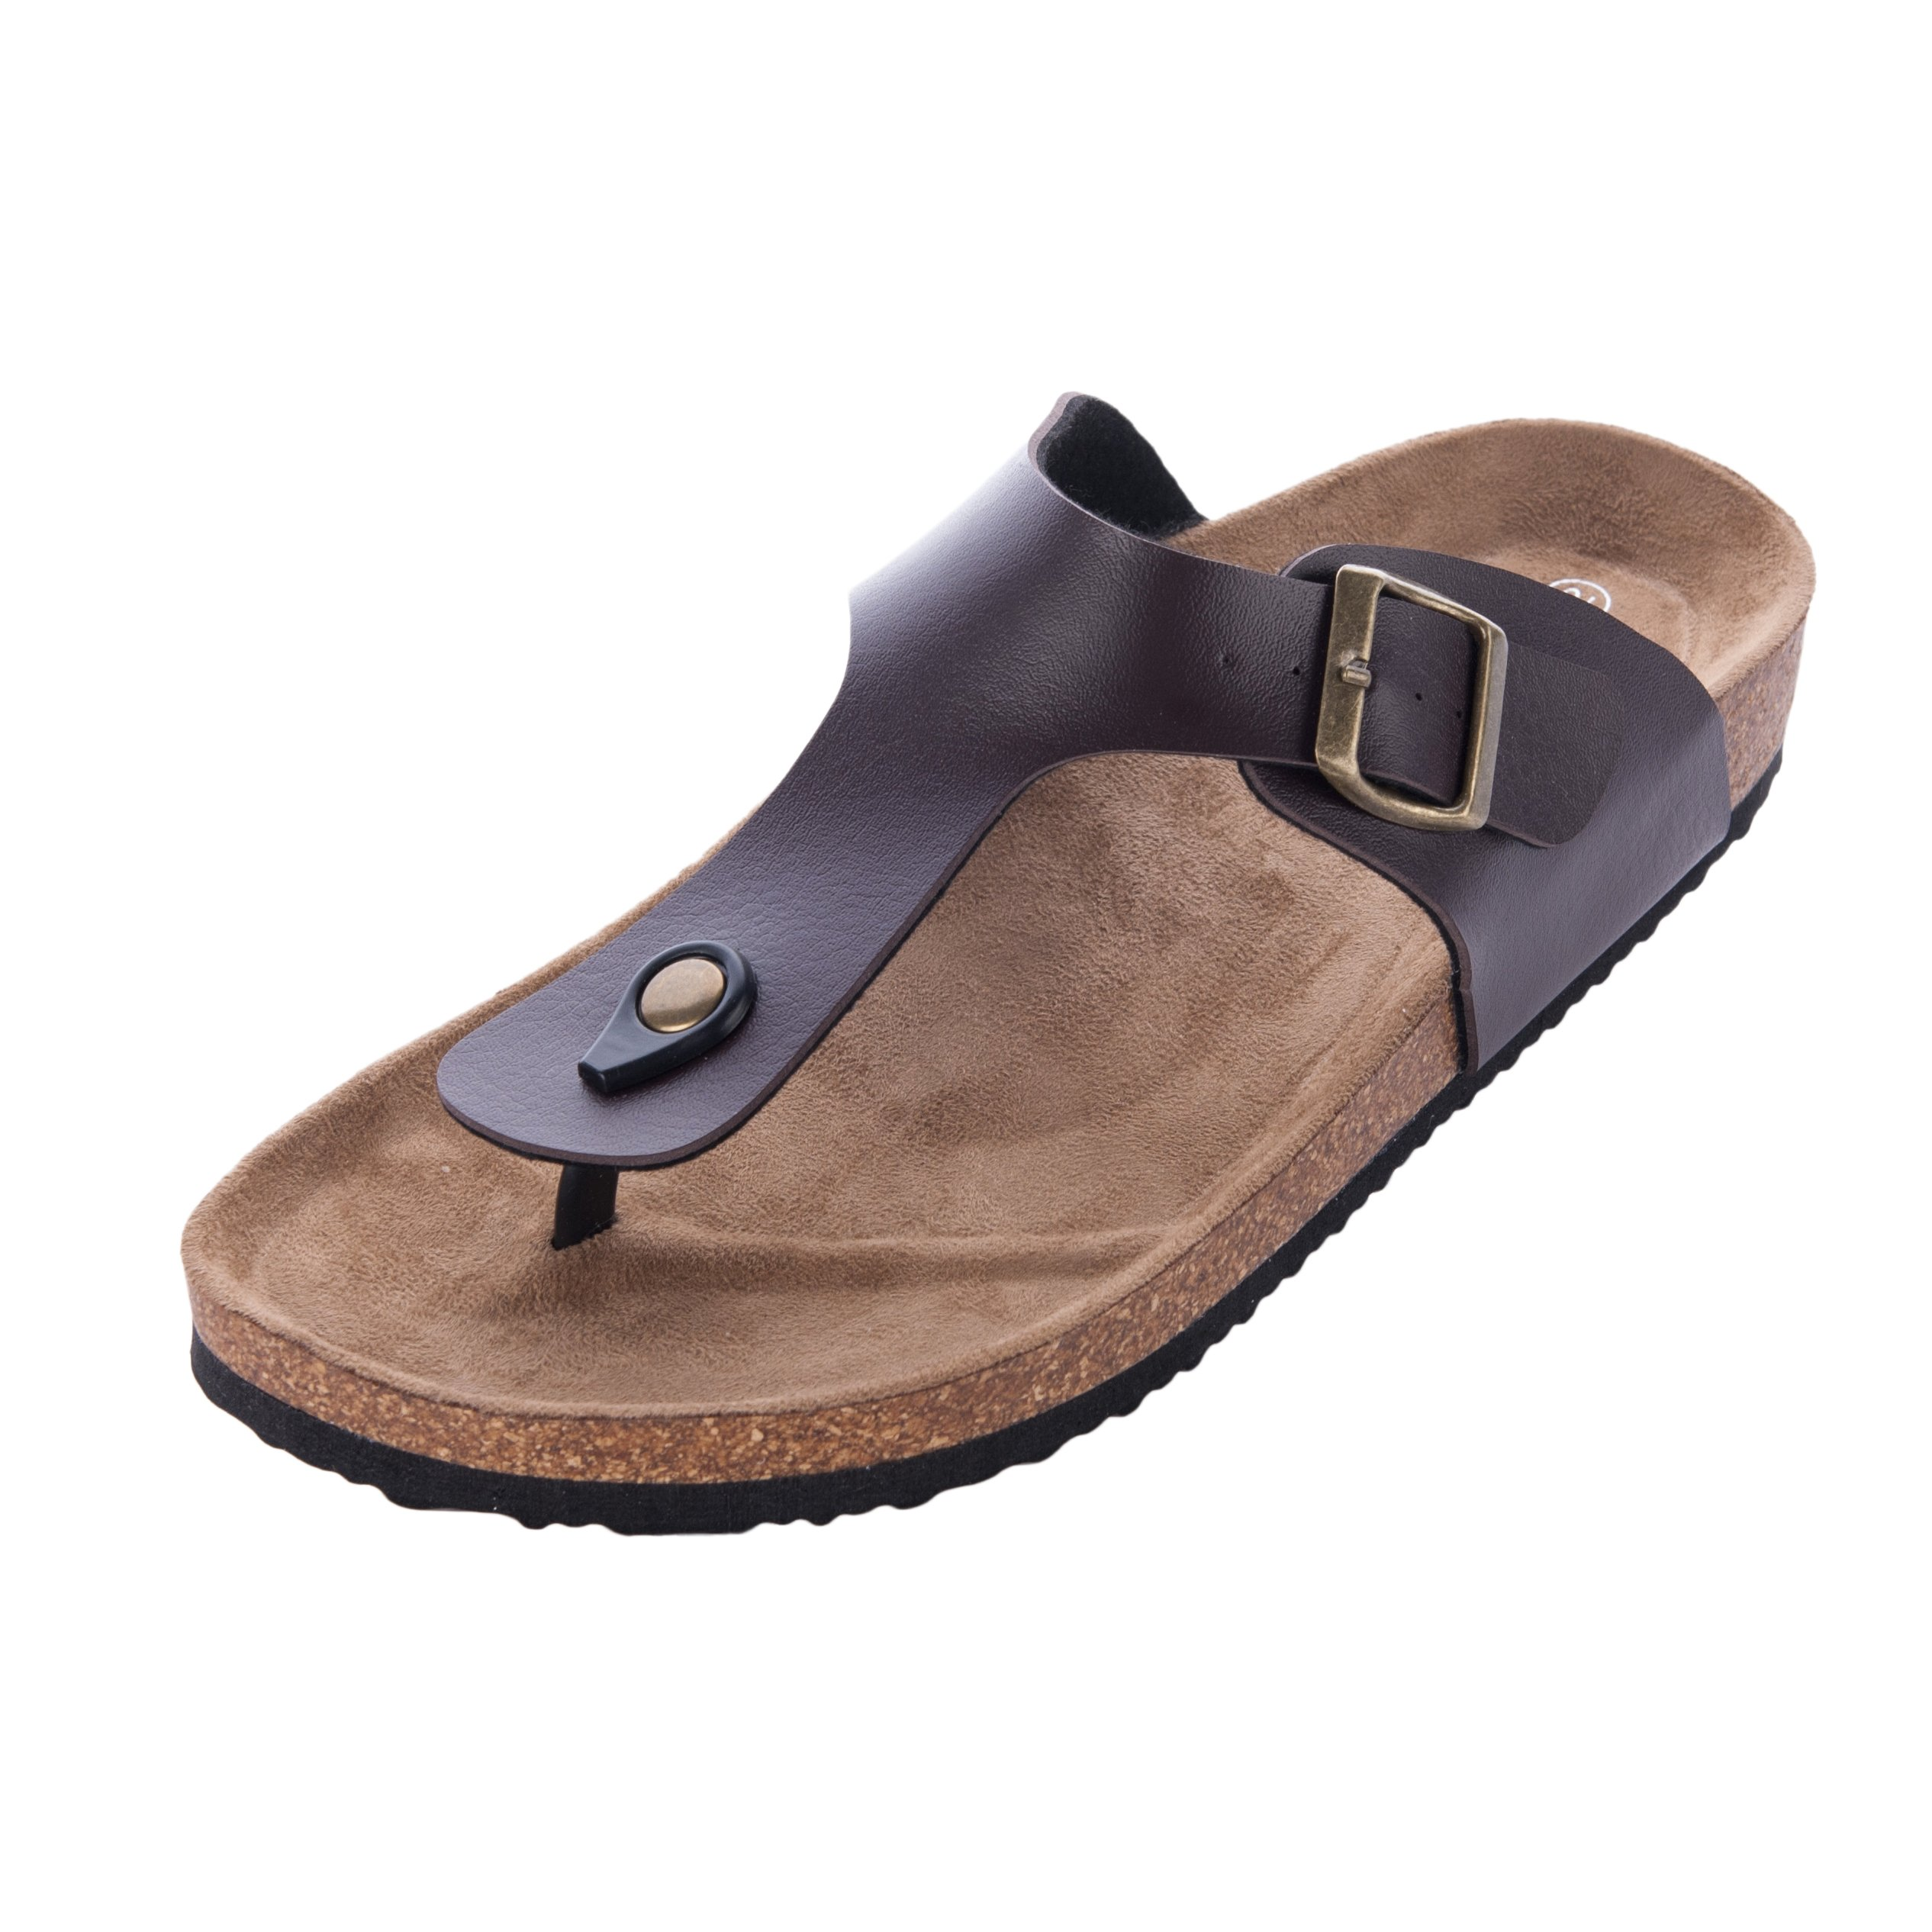 WTW New Men's Style Sandals Gizeh Footbed Flat Sandal for Summer Suitable with Any Outfit (11 B(M) US, Brown)